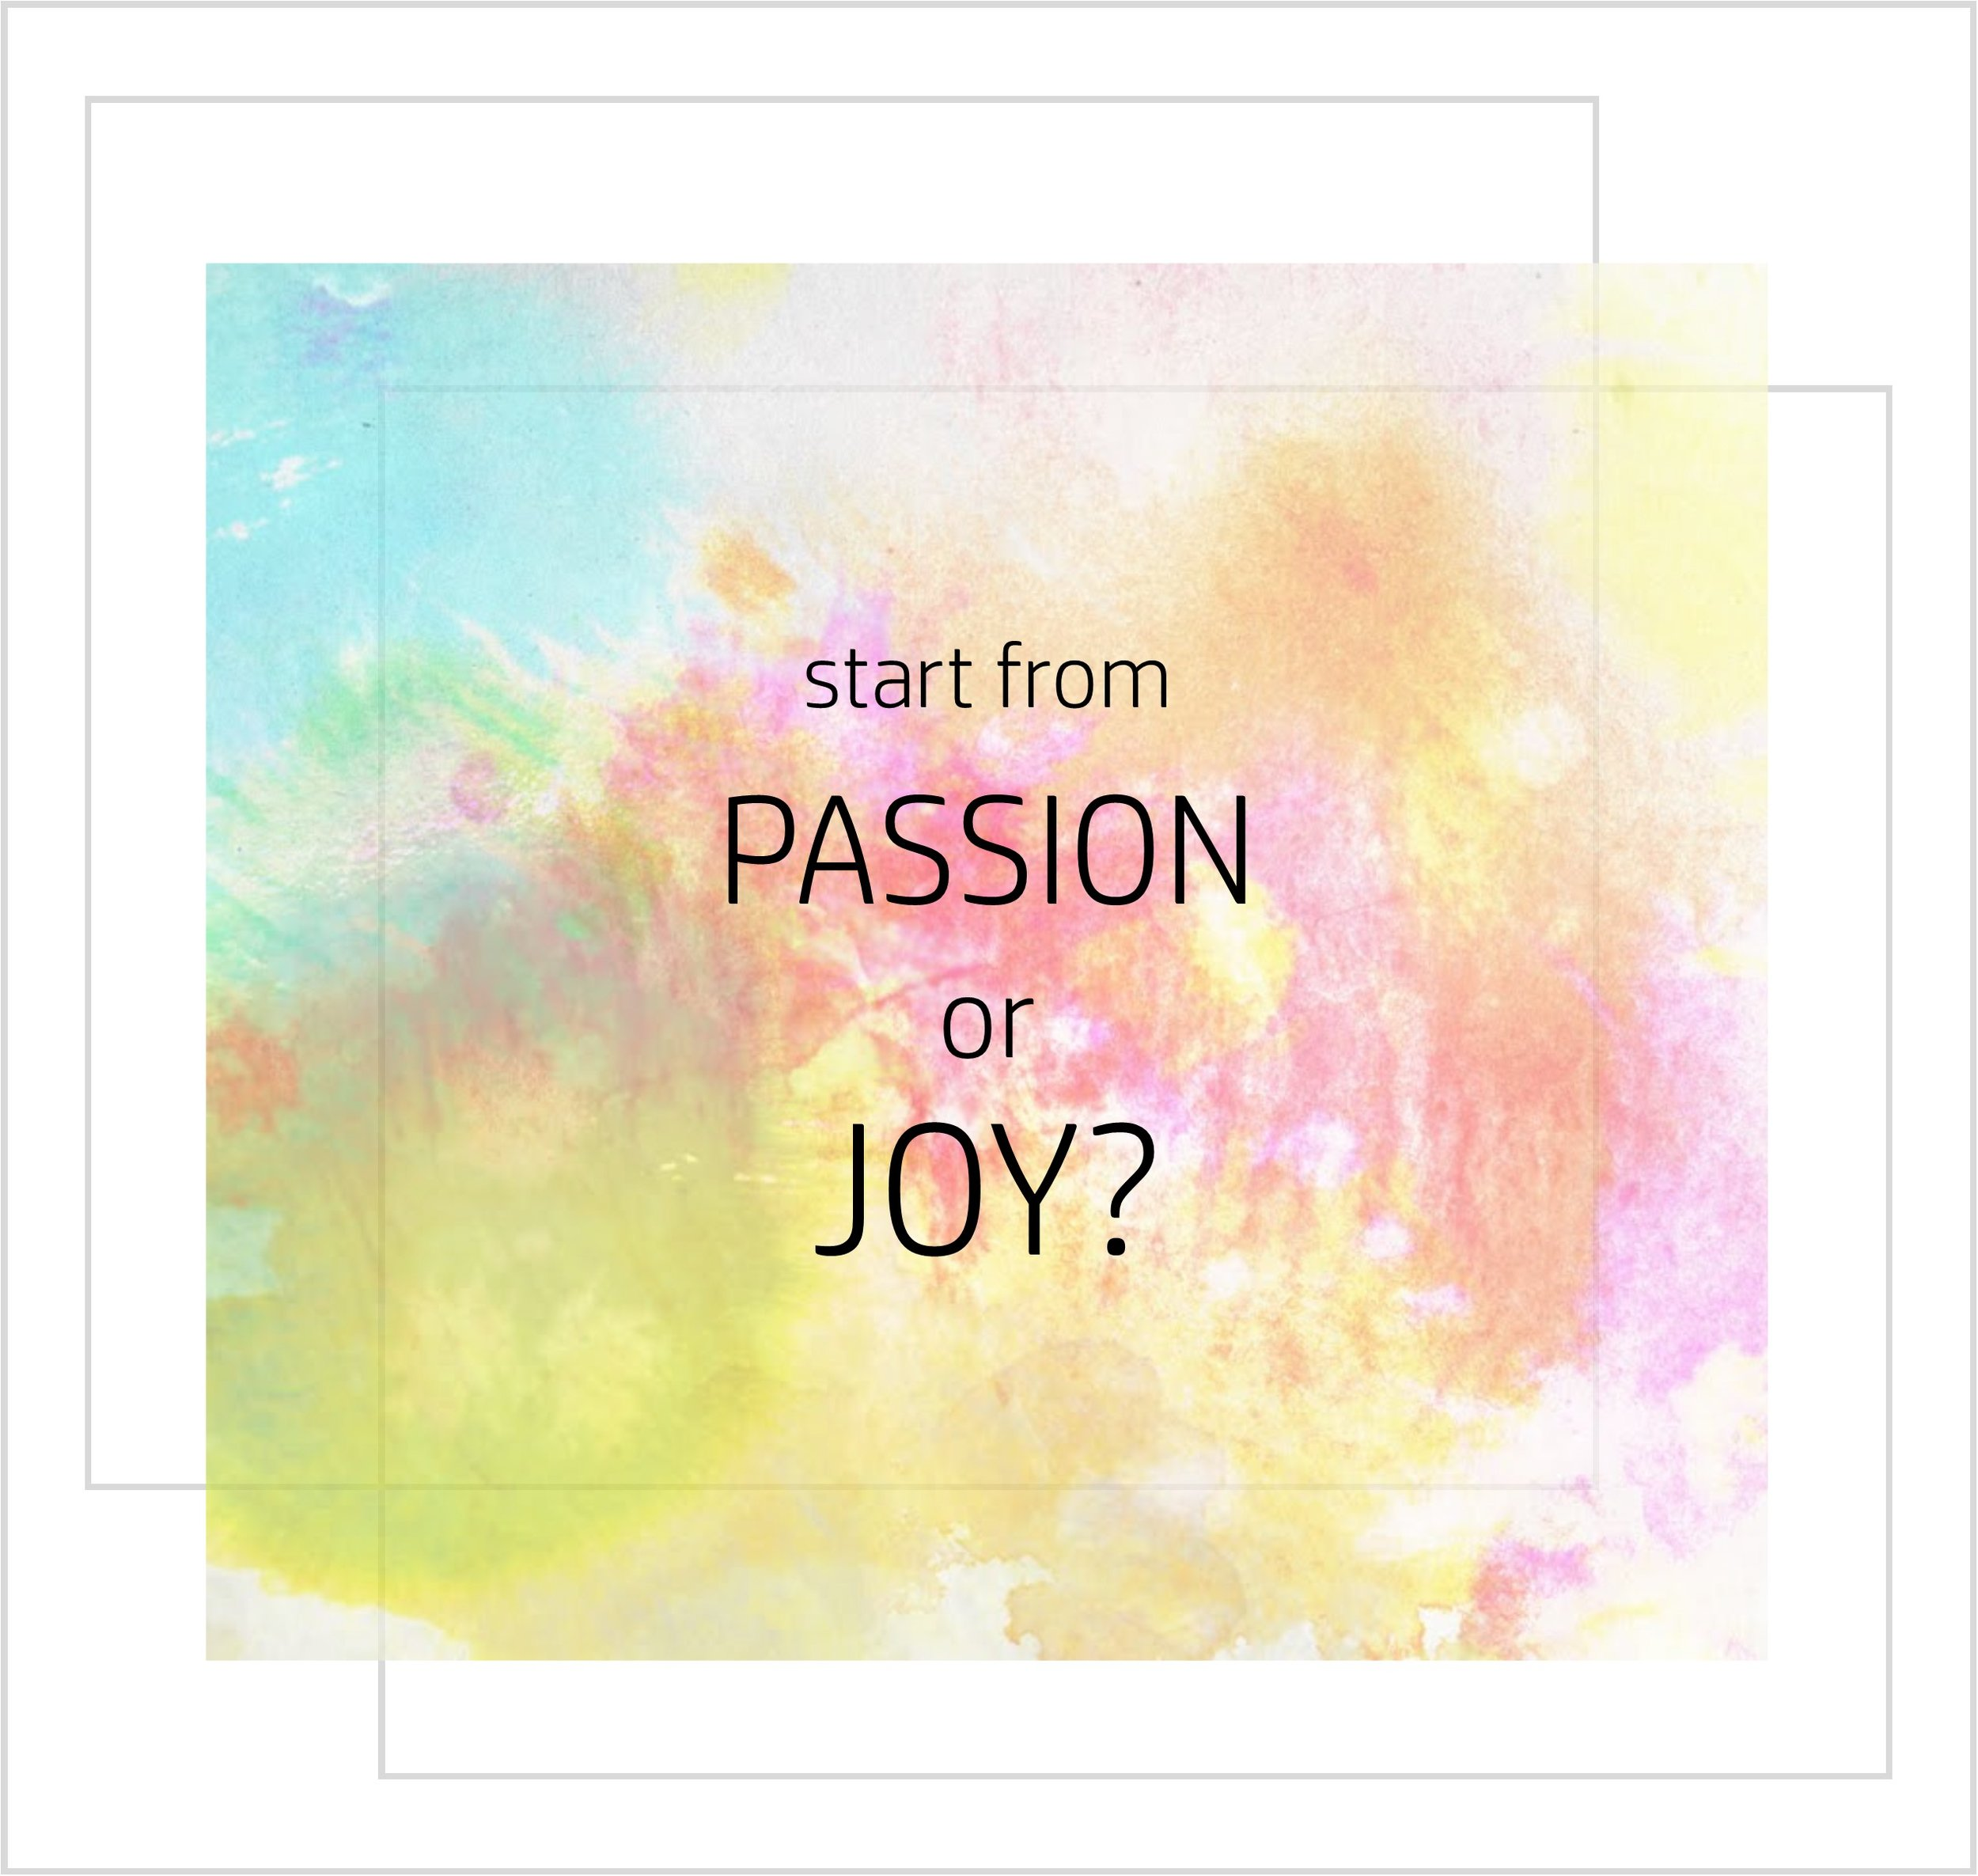 joy or passion meme kathy van kleeck.jpg